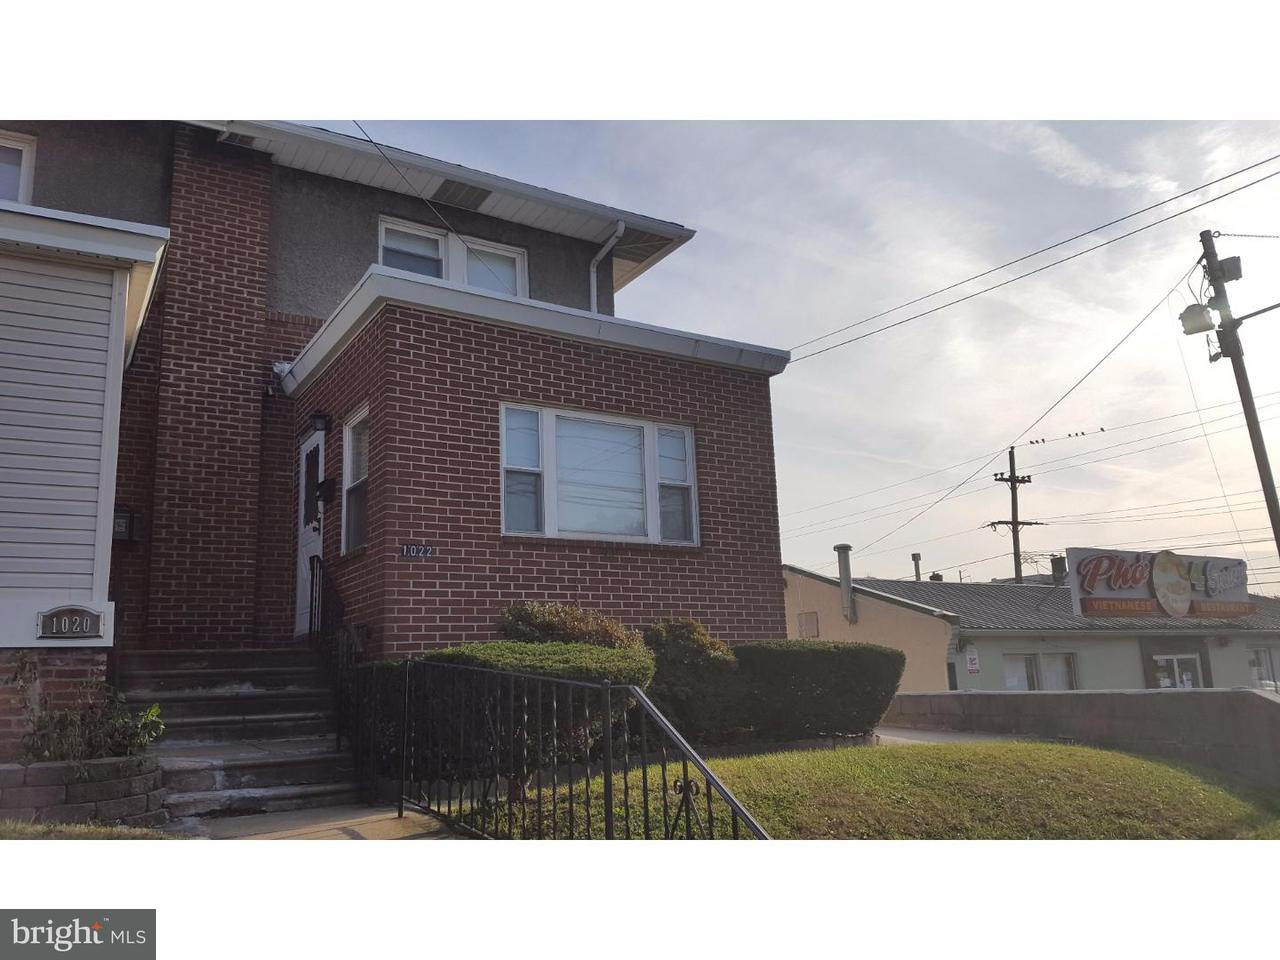 Townhouse for Sale at 1022 MACDADE BLVD Darby, Pennsylvania 19023 United States